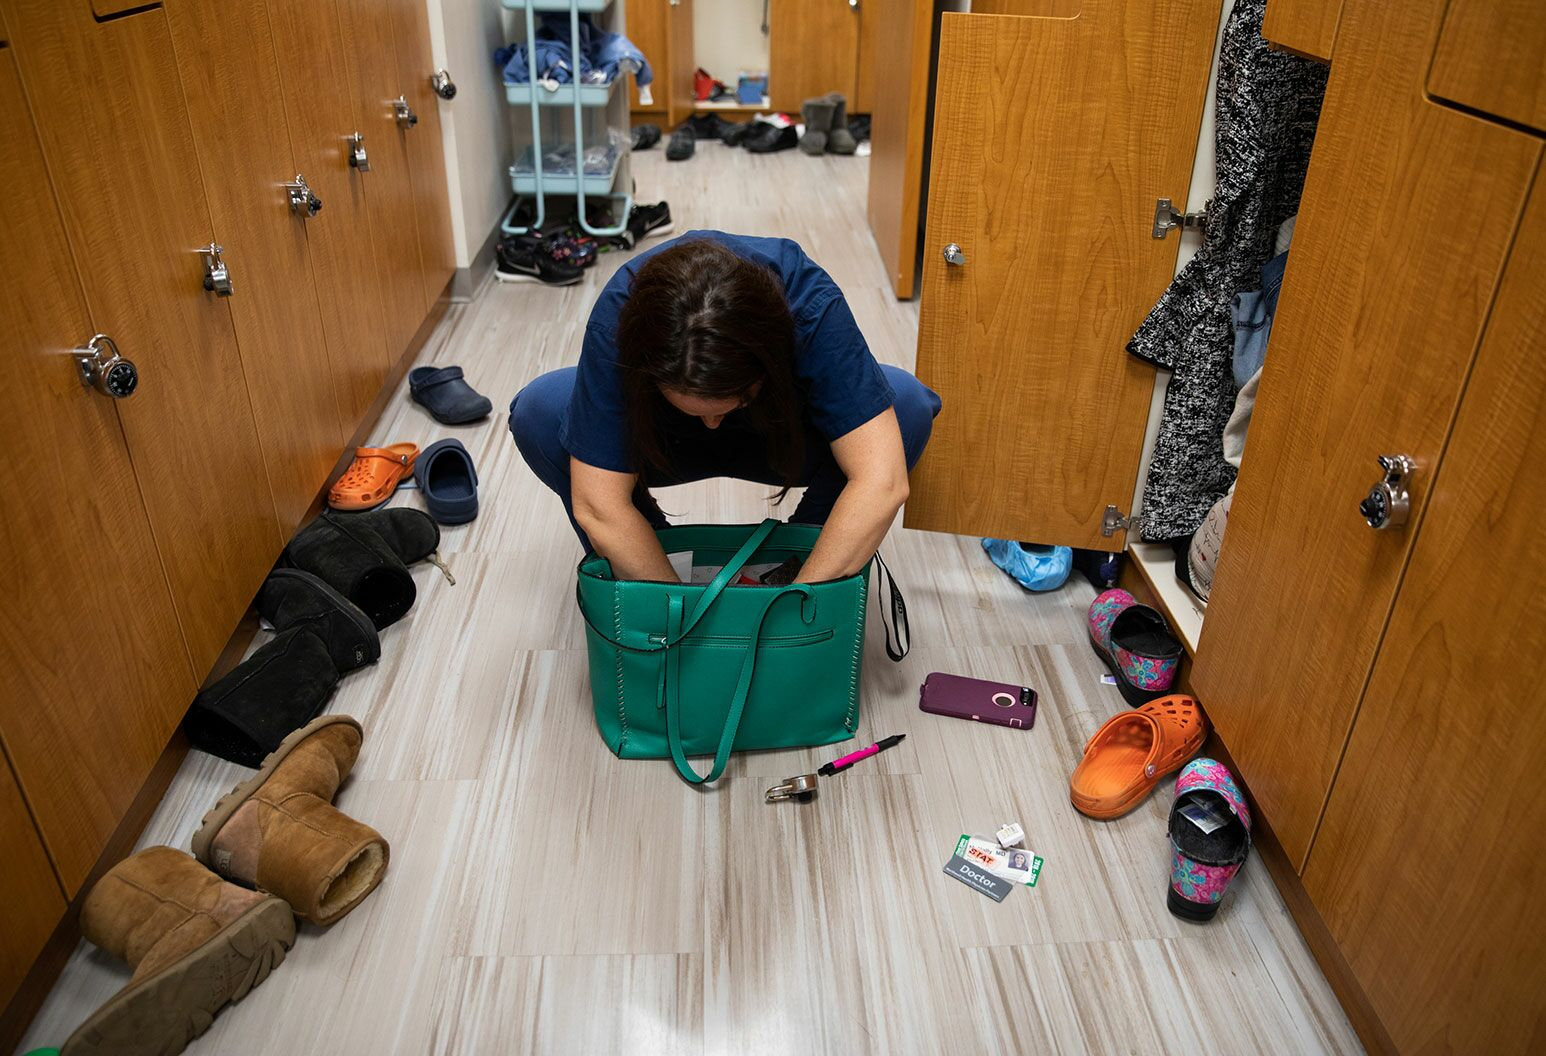 A woman in blue scrubs crouches over a teal bag in a messy locker room searching for something.